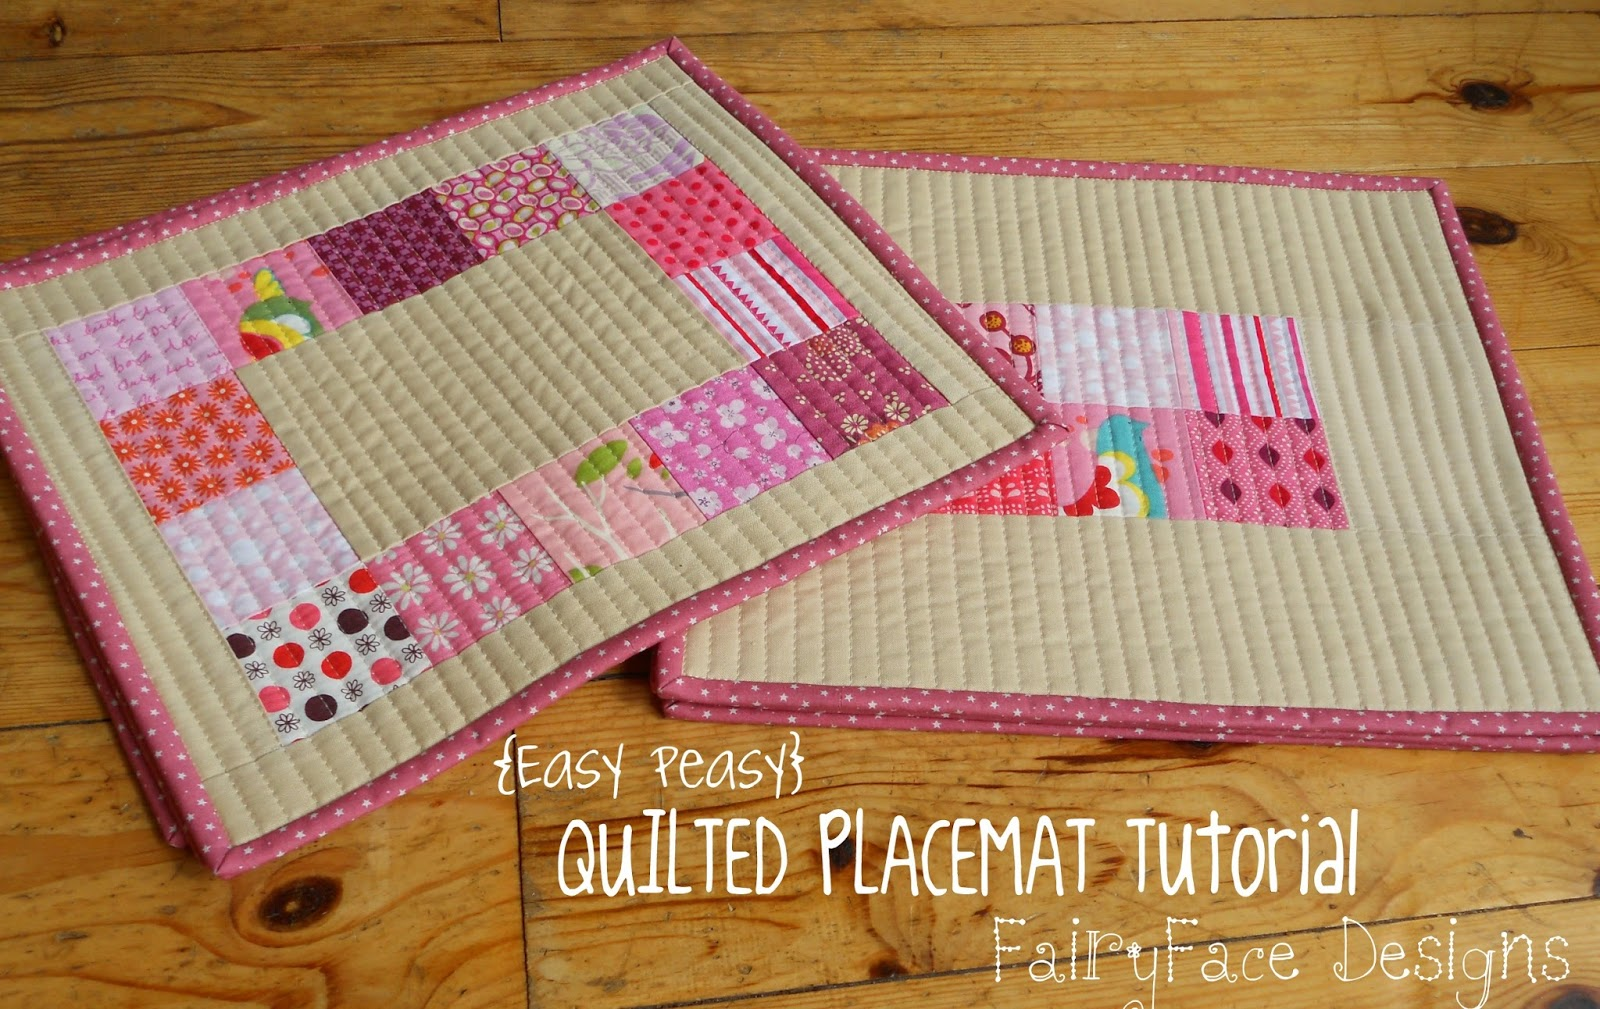 Fairyface designs easy peasy quilted placemats tutorial for Table mats design your own